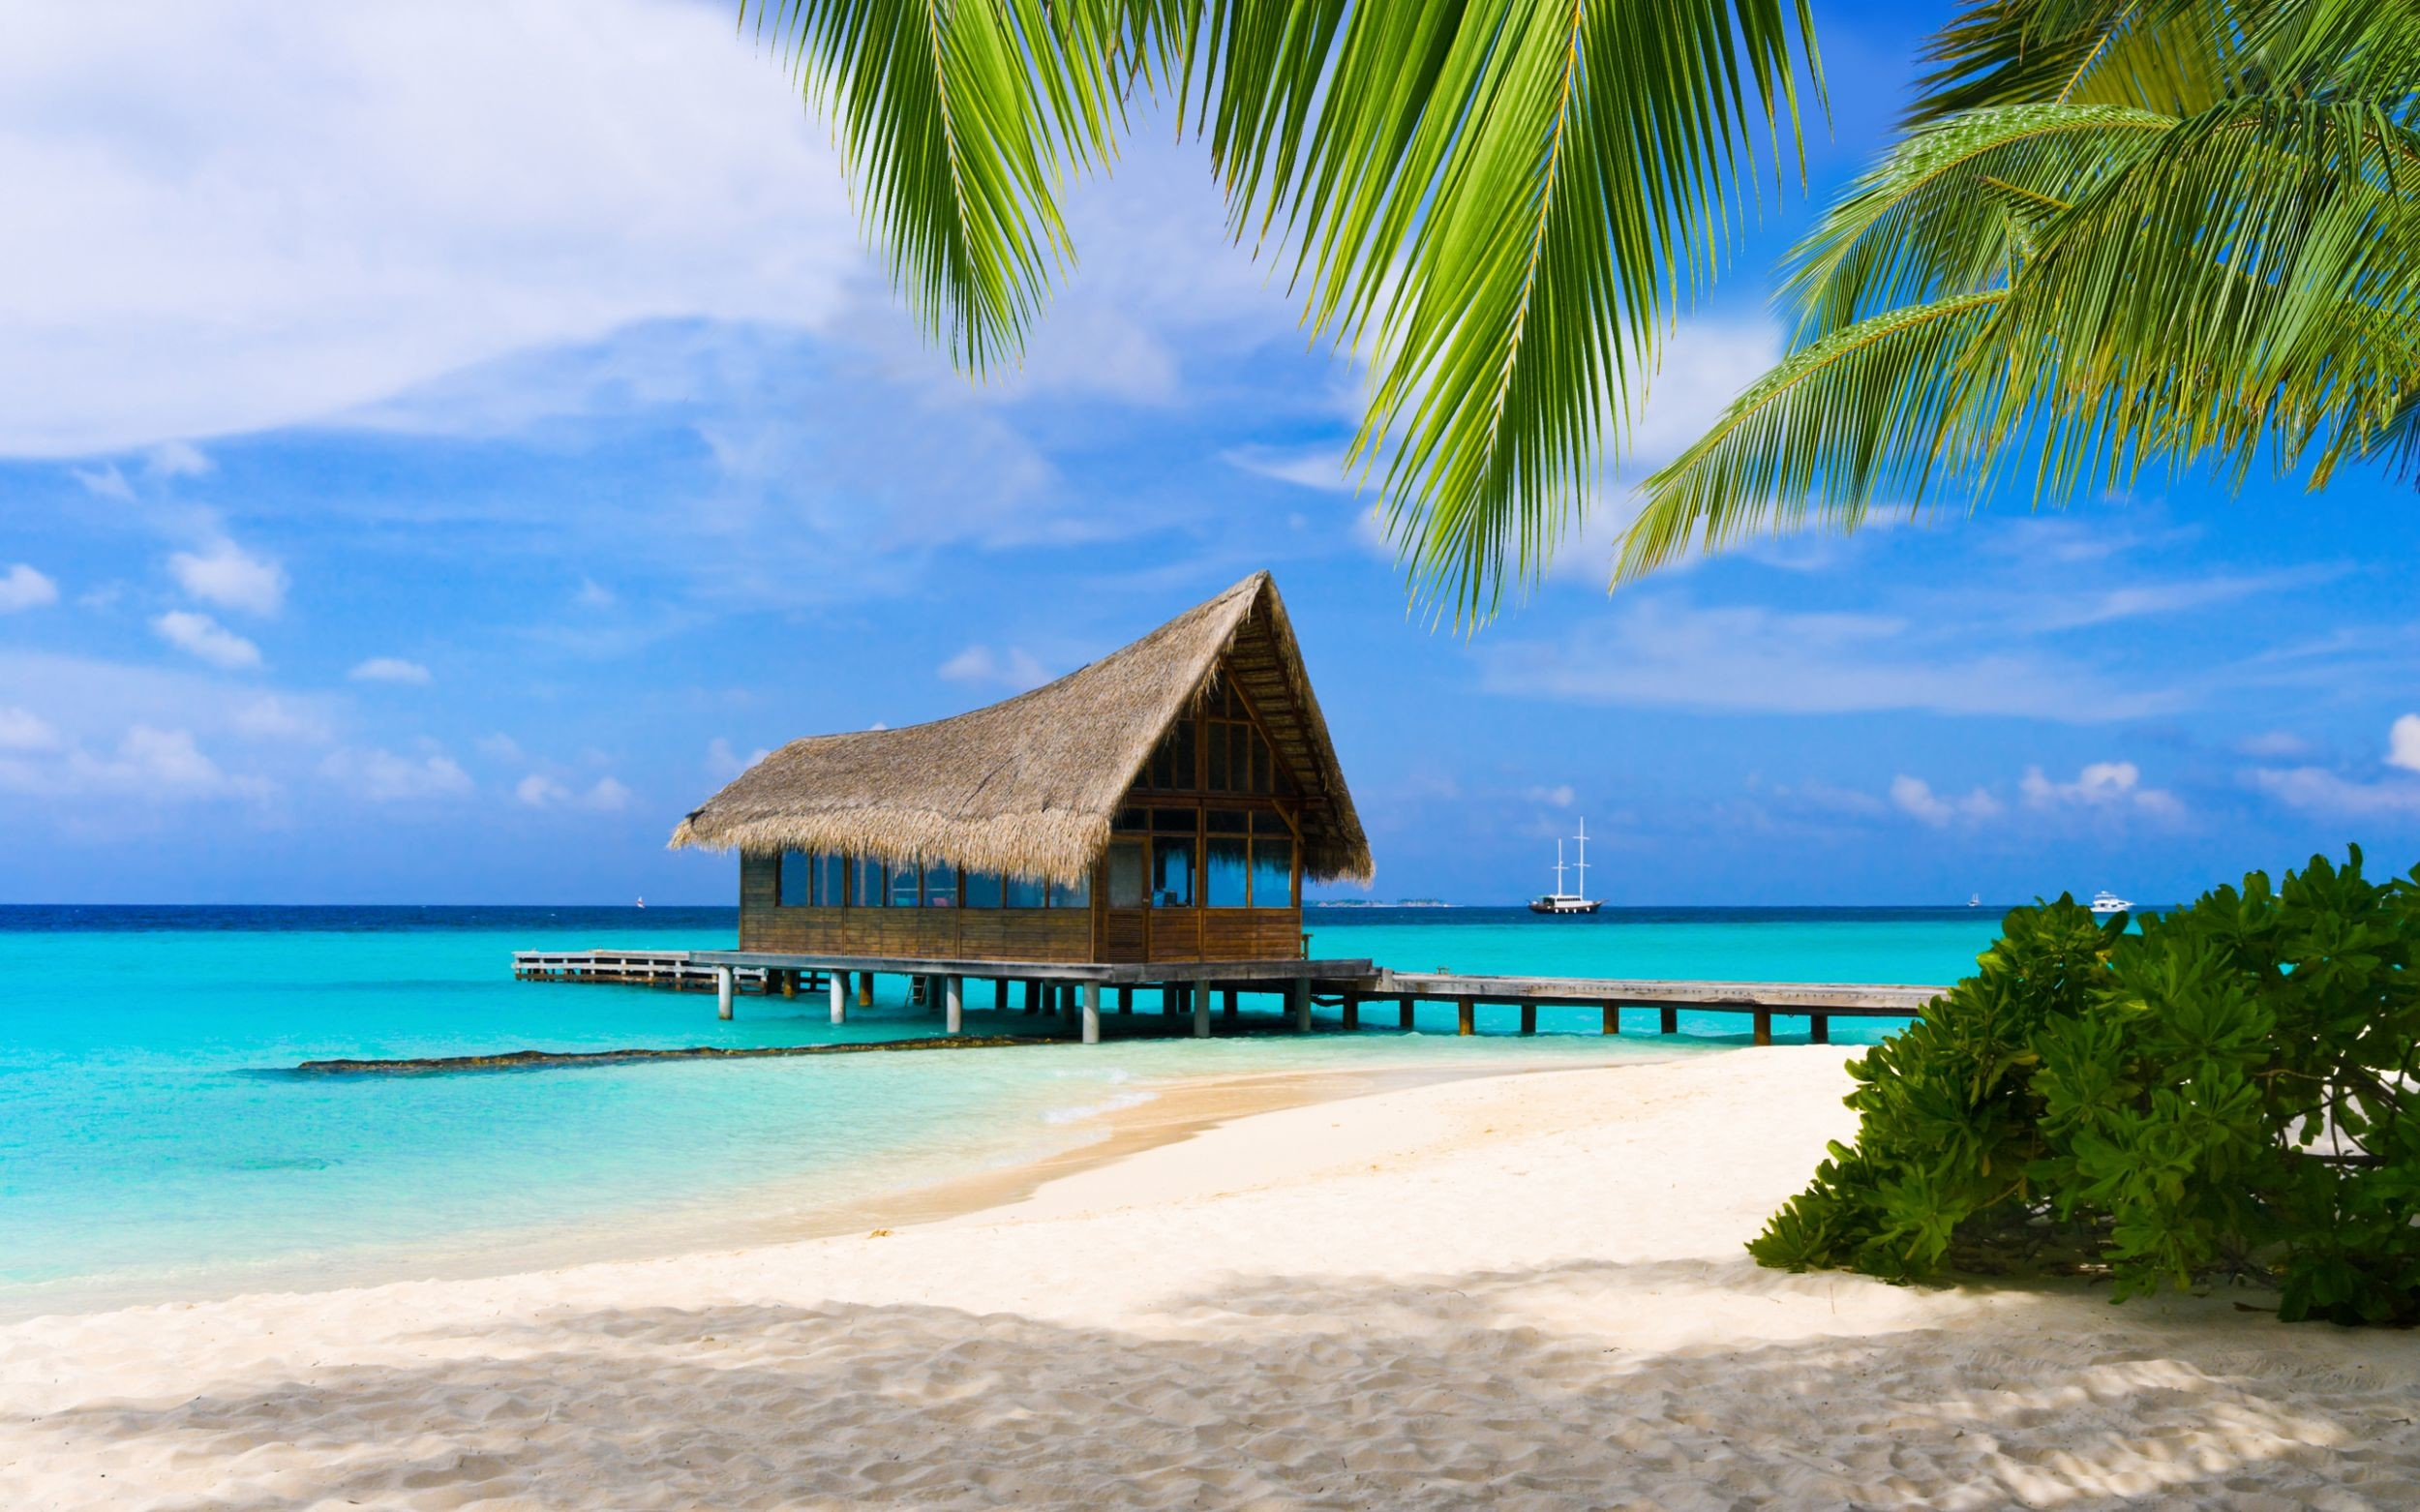 Res: 2500x1562, PC, Laptop Ocean Wallpapers, Wallpapers and Pictures Gallery – download free